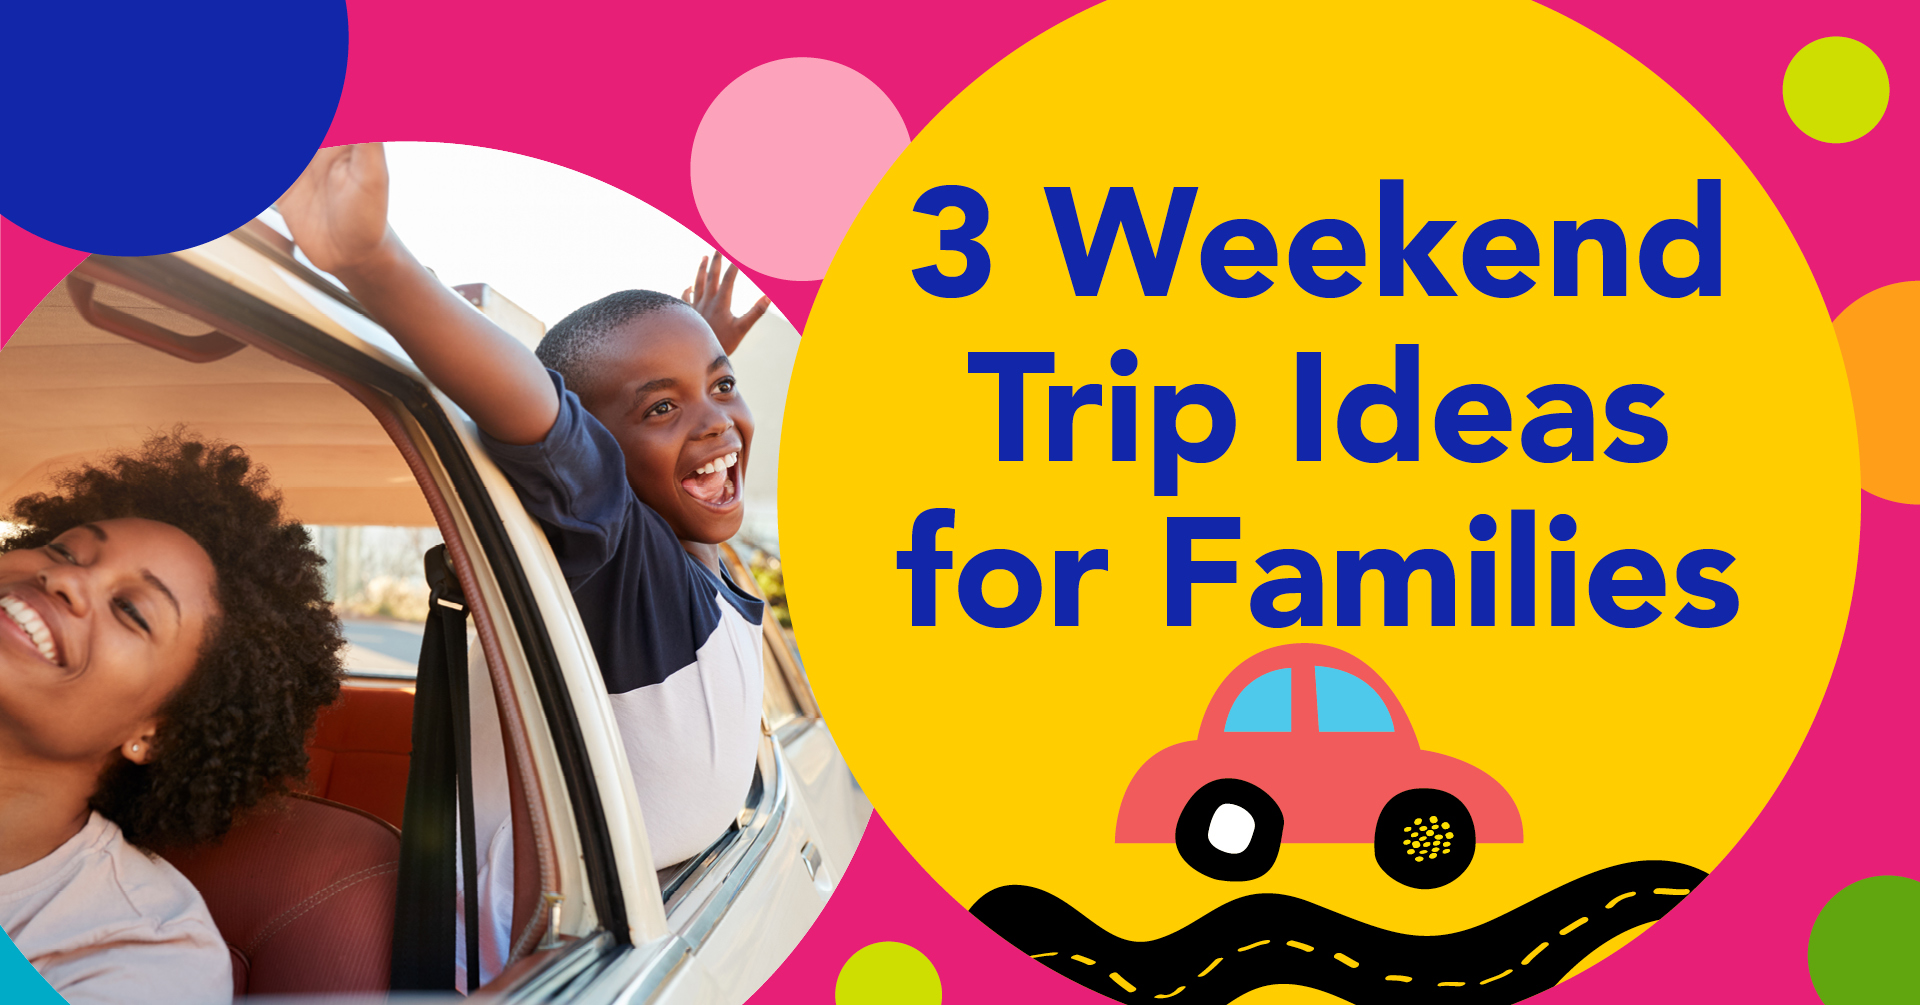 3 Weekend Trip Ideas for Families